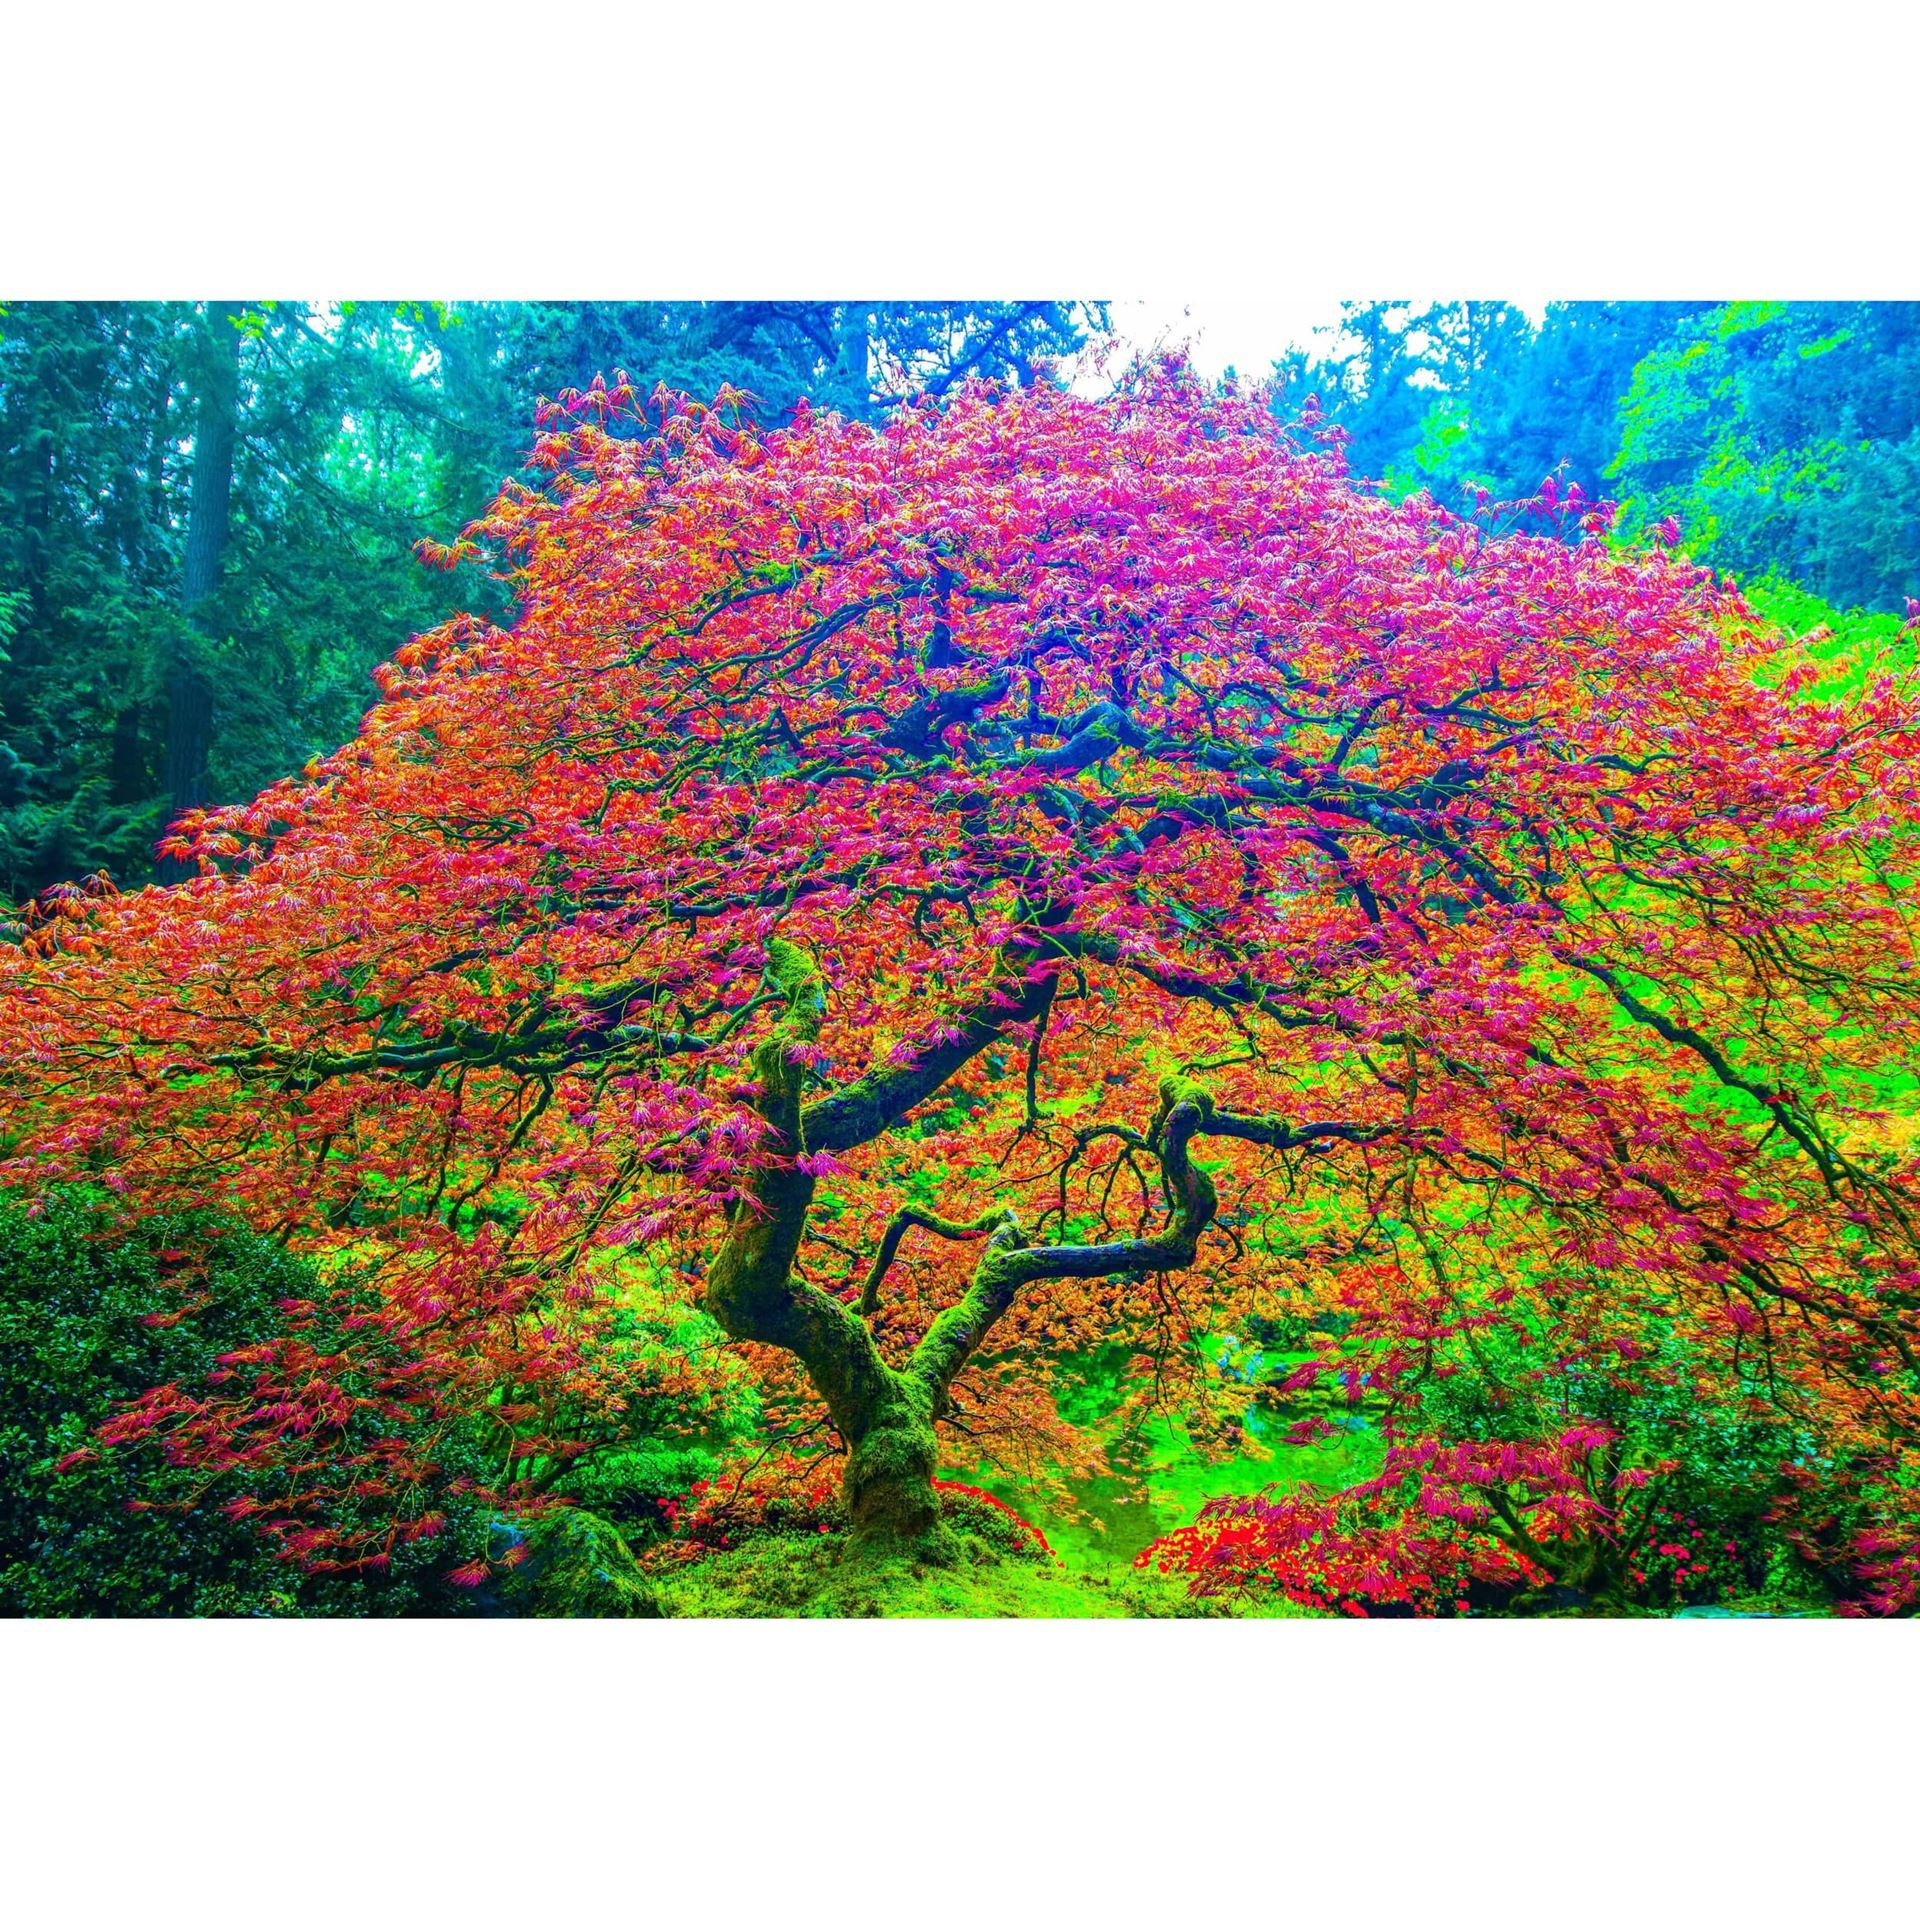 Japanese Maple 1 32x48 125 5433454 Mike Kim Afw Com